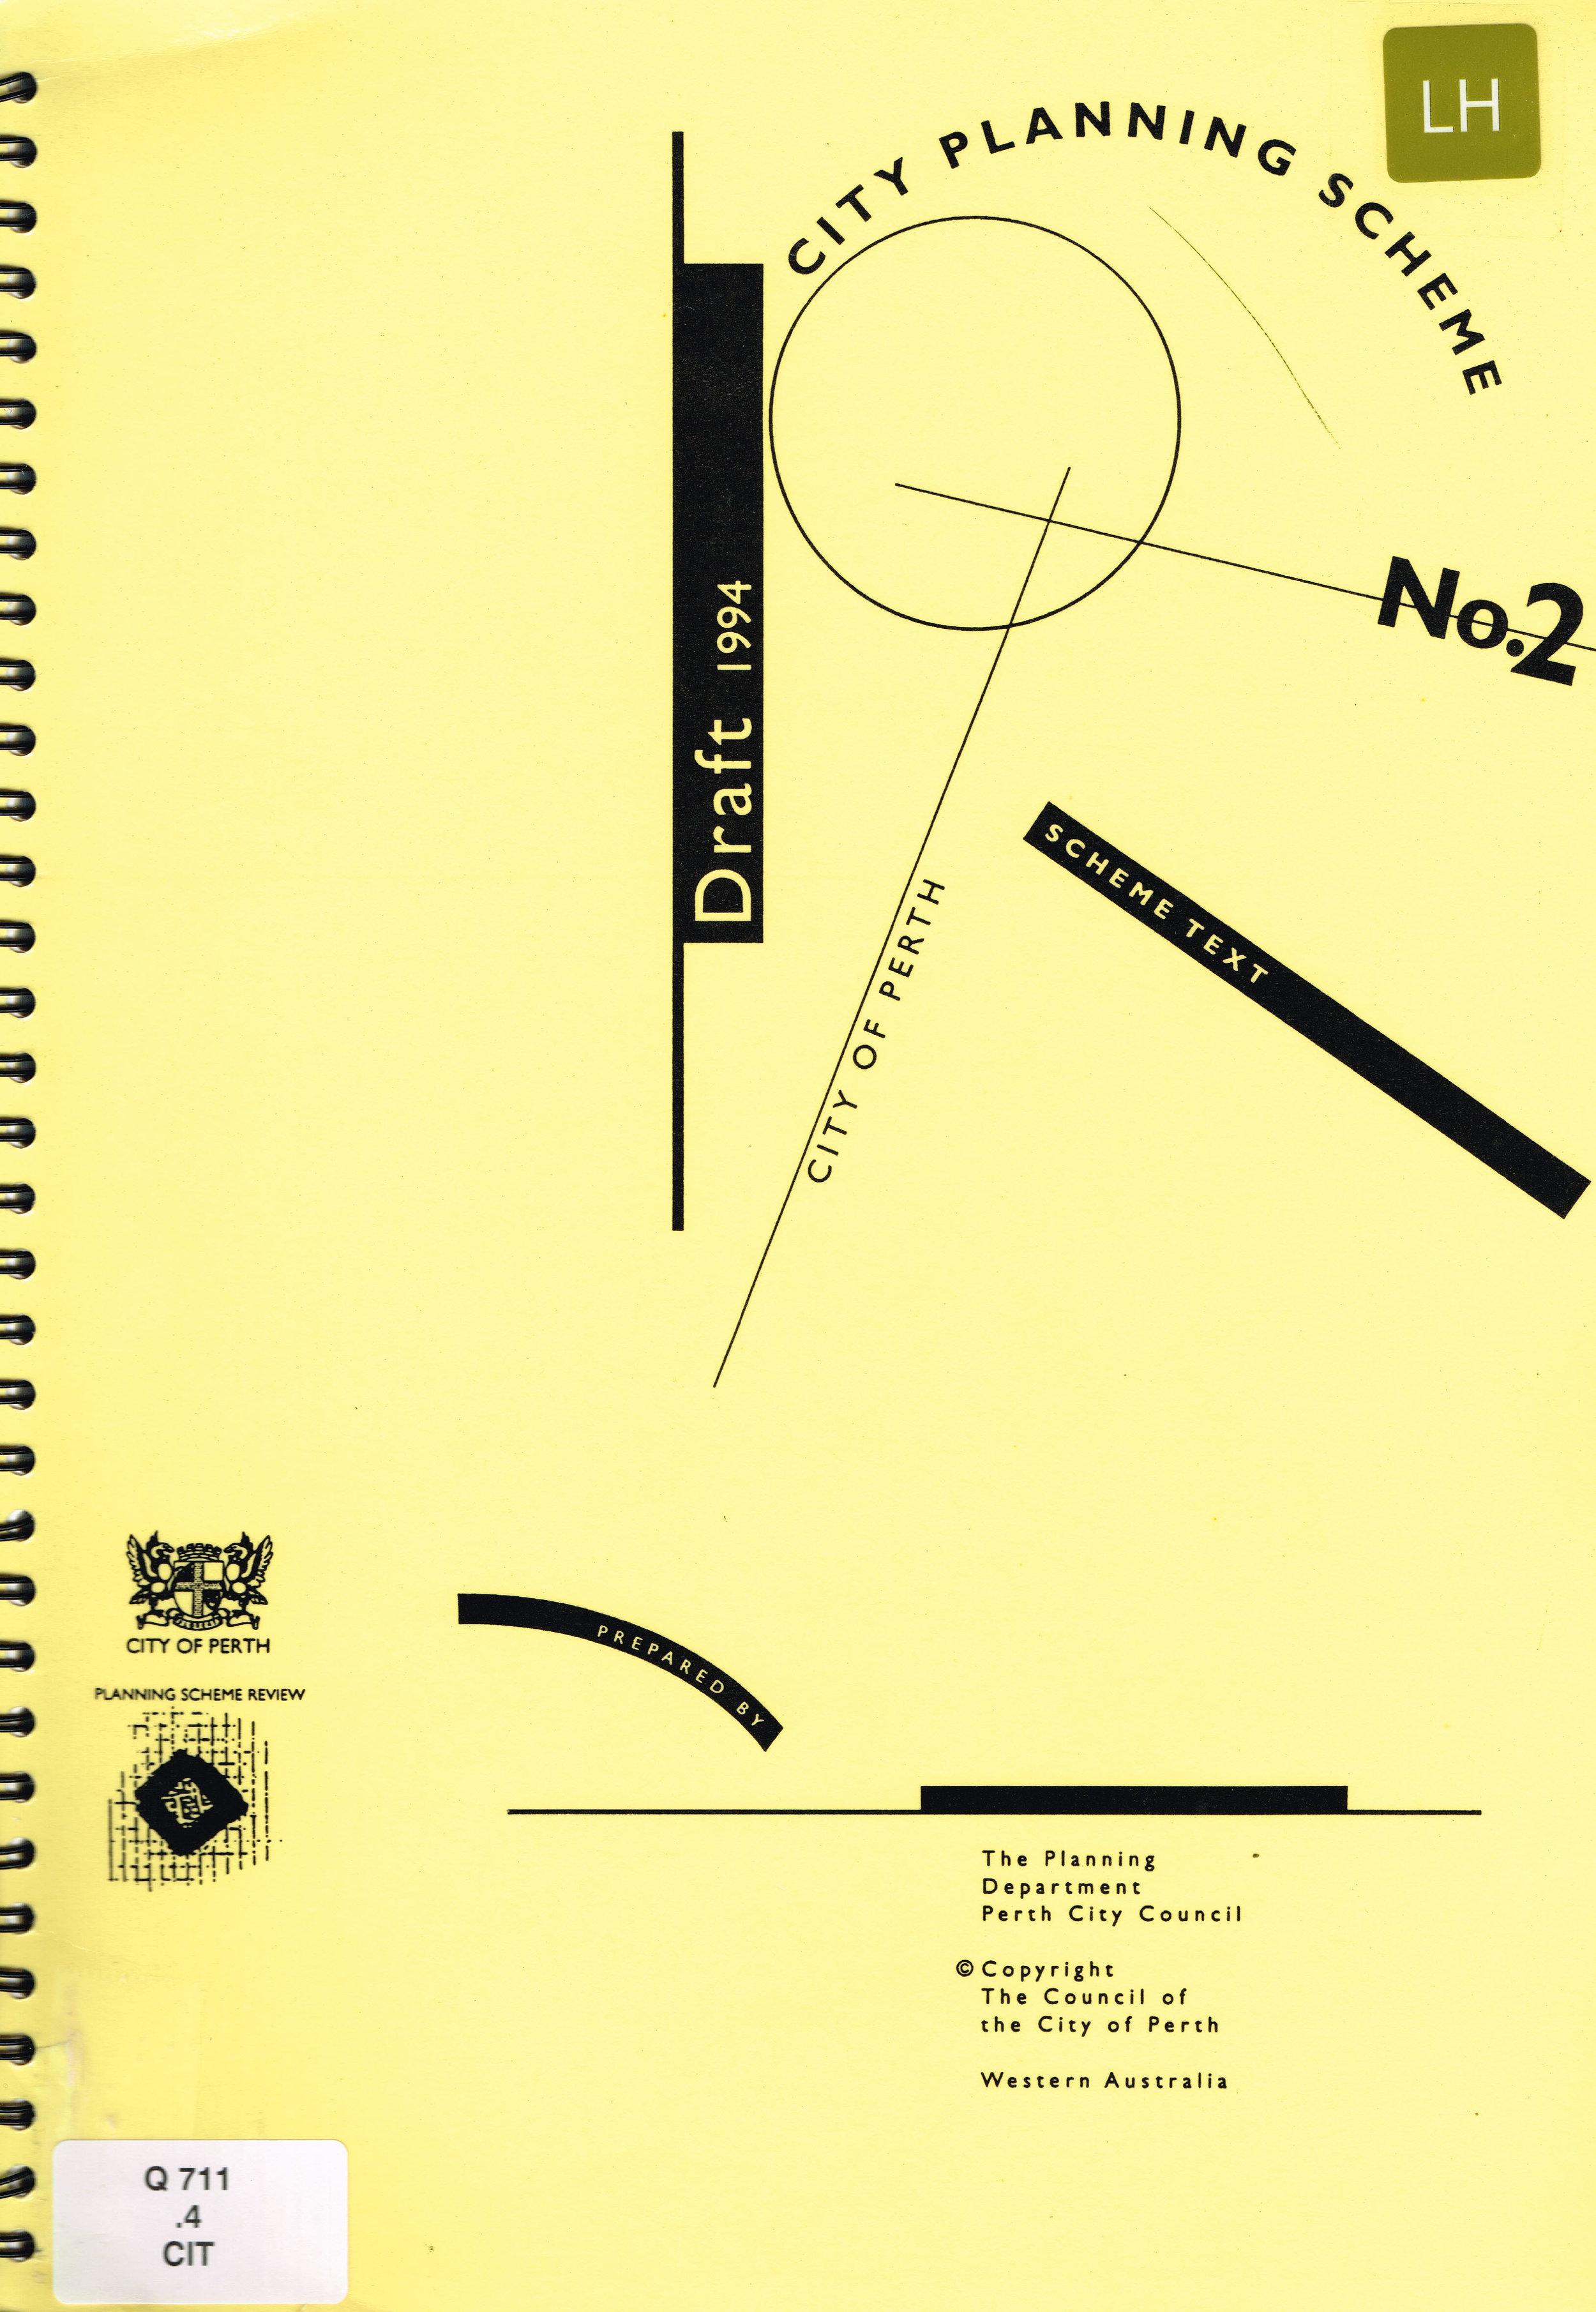 City Planning Scheme : Draft 1994 No. 2  City of Perth : The Planning Department Perth and City Council